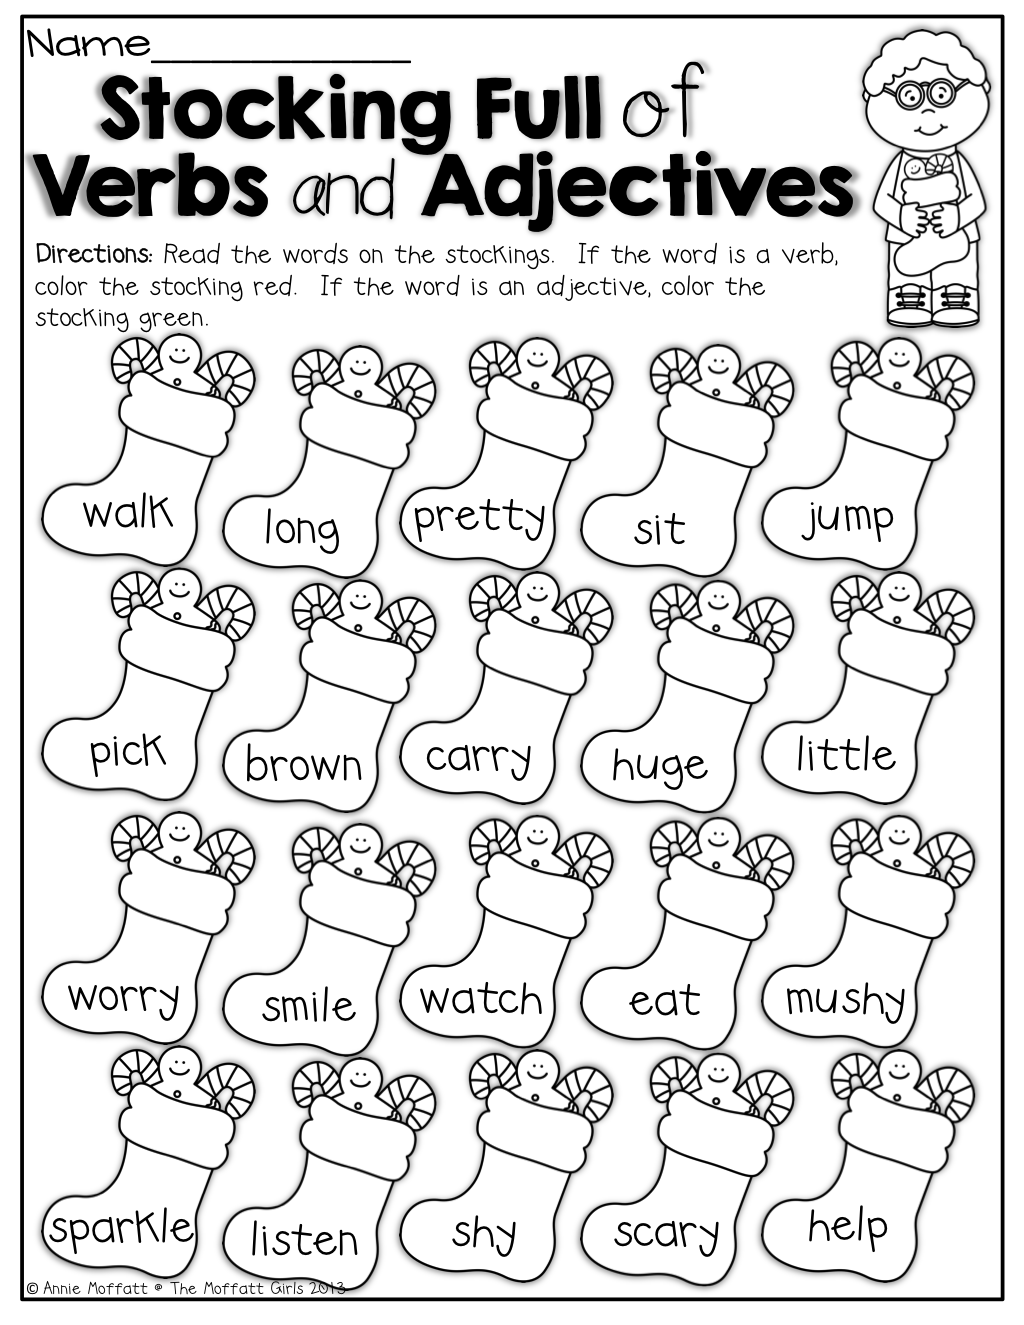 Co coloring worksheets for grade 2 - Verbs And Adjectives Color By The Code